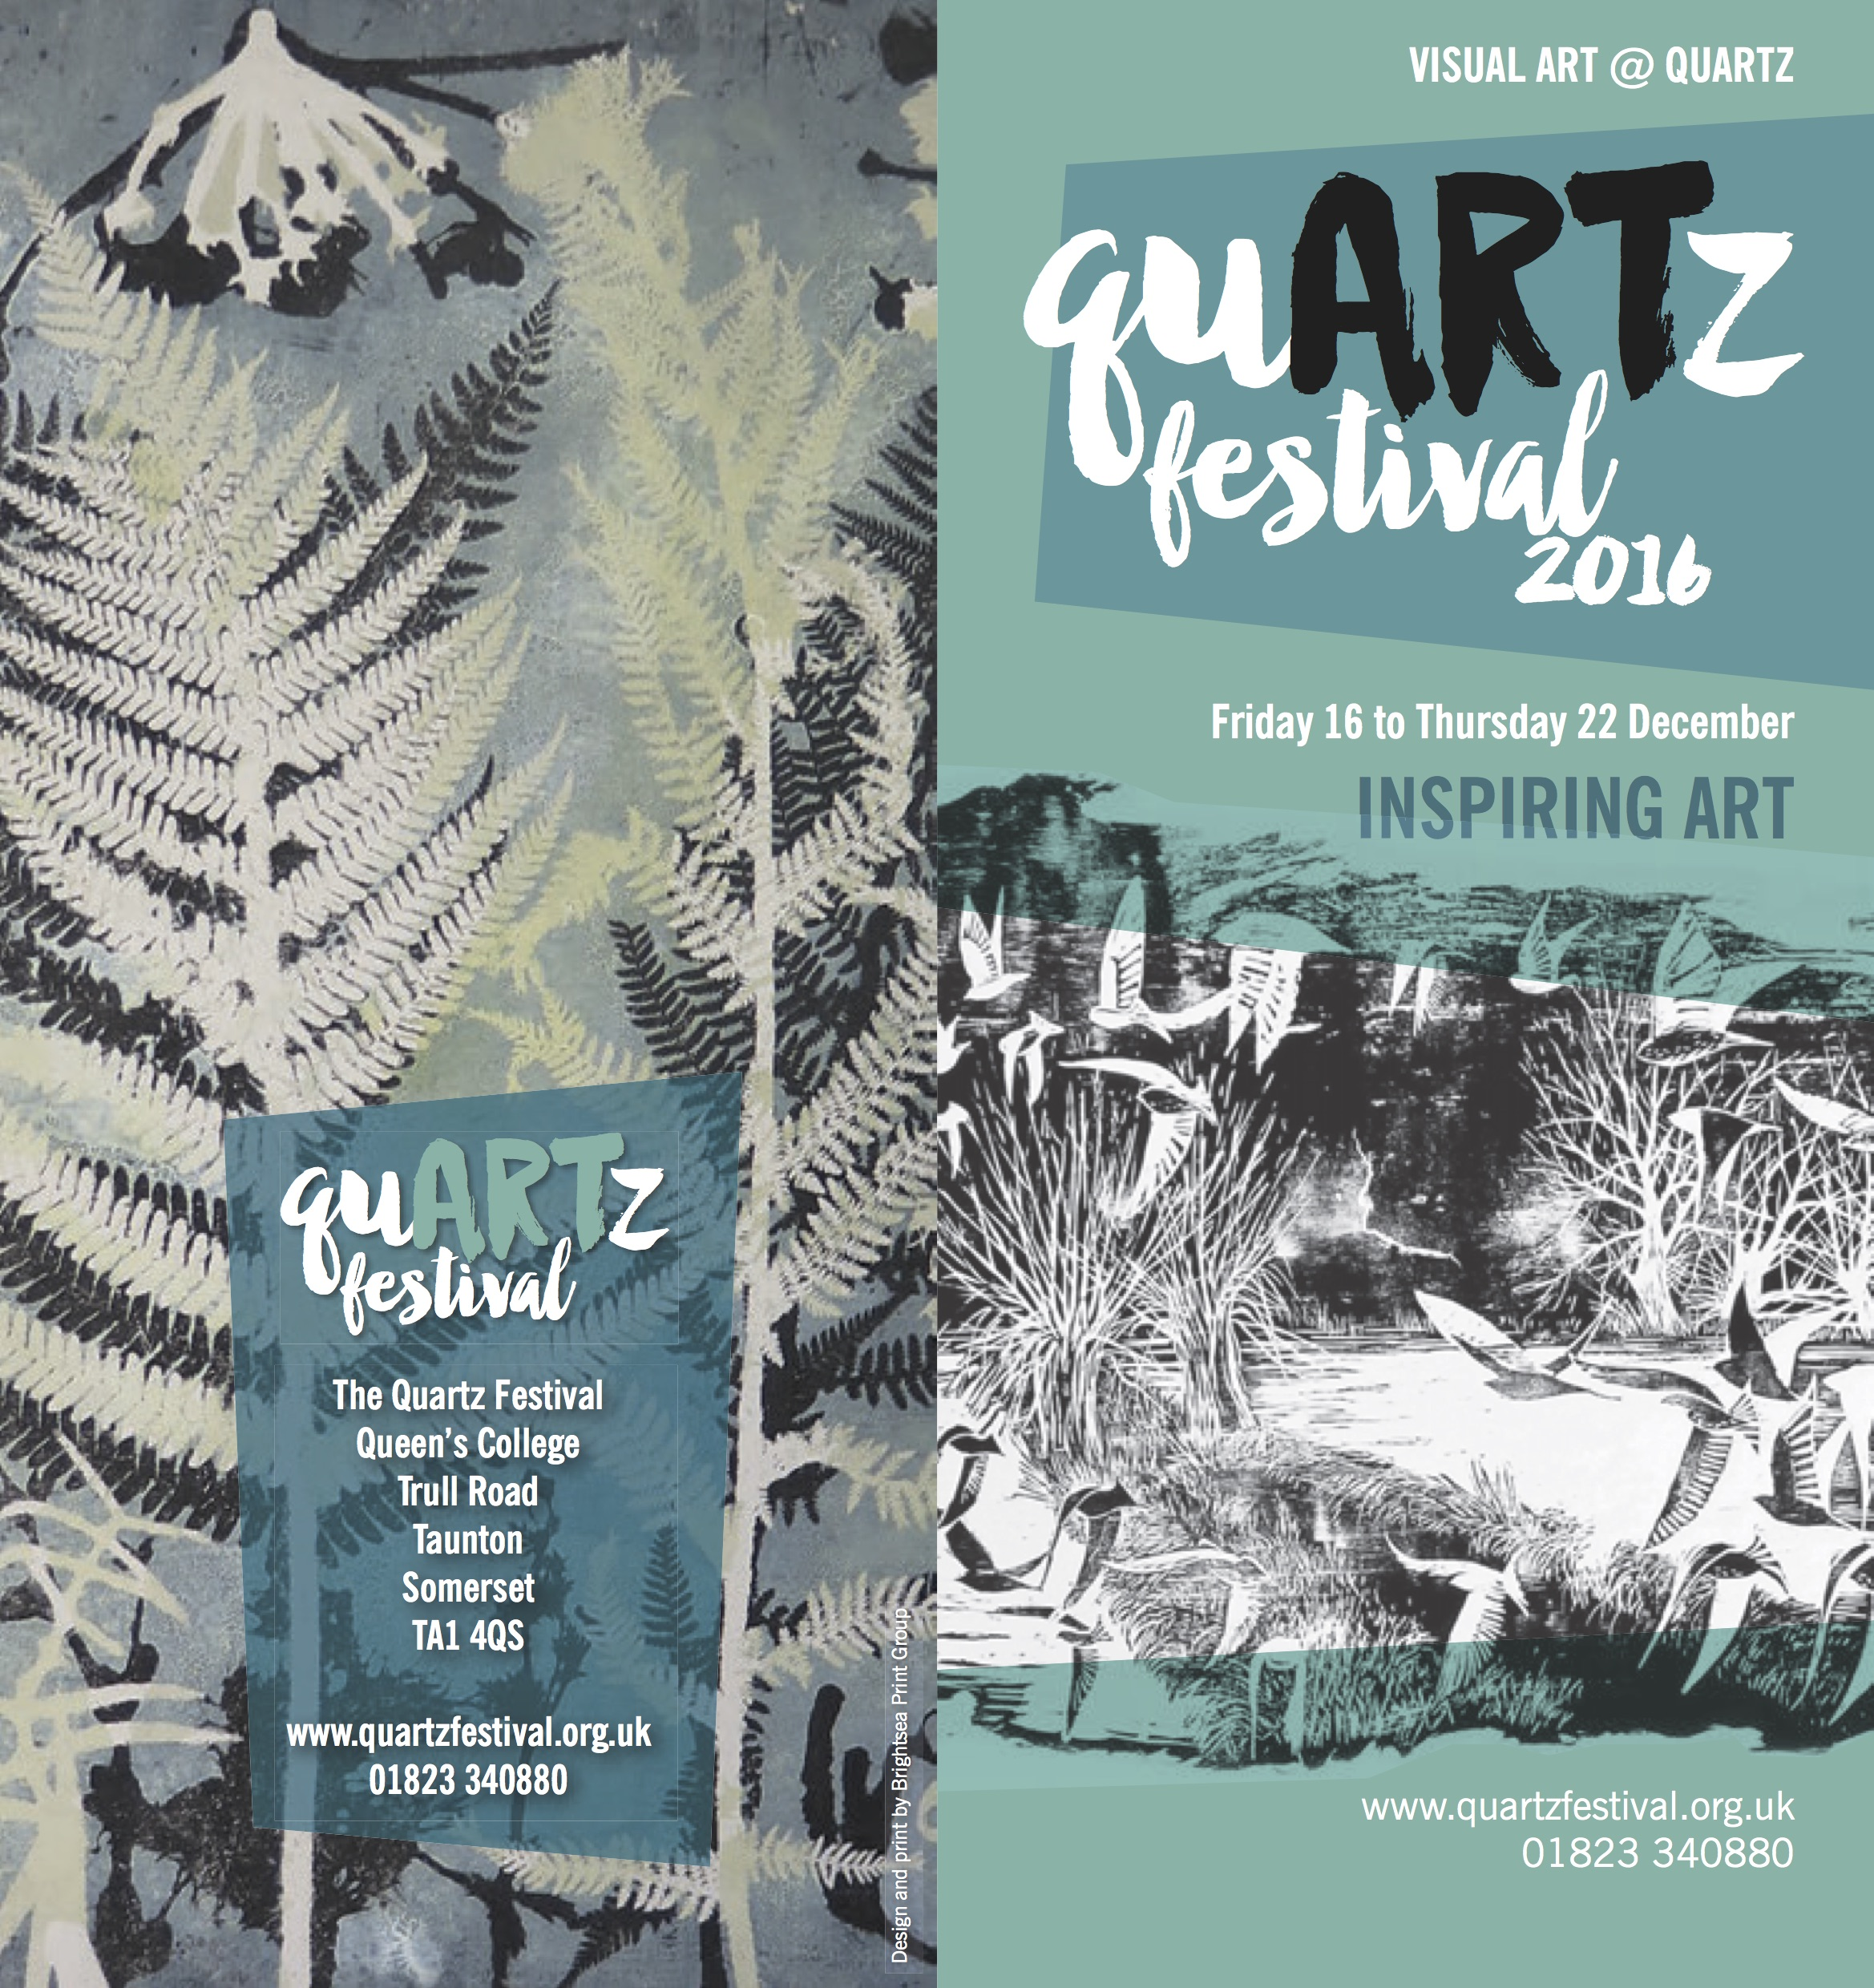 quartz-visual-art-exhibition